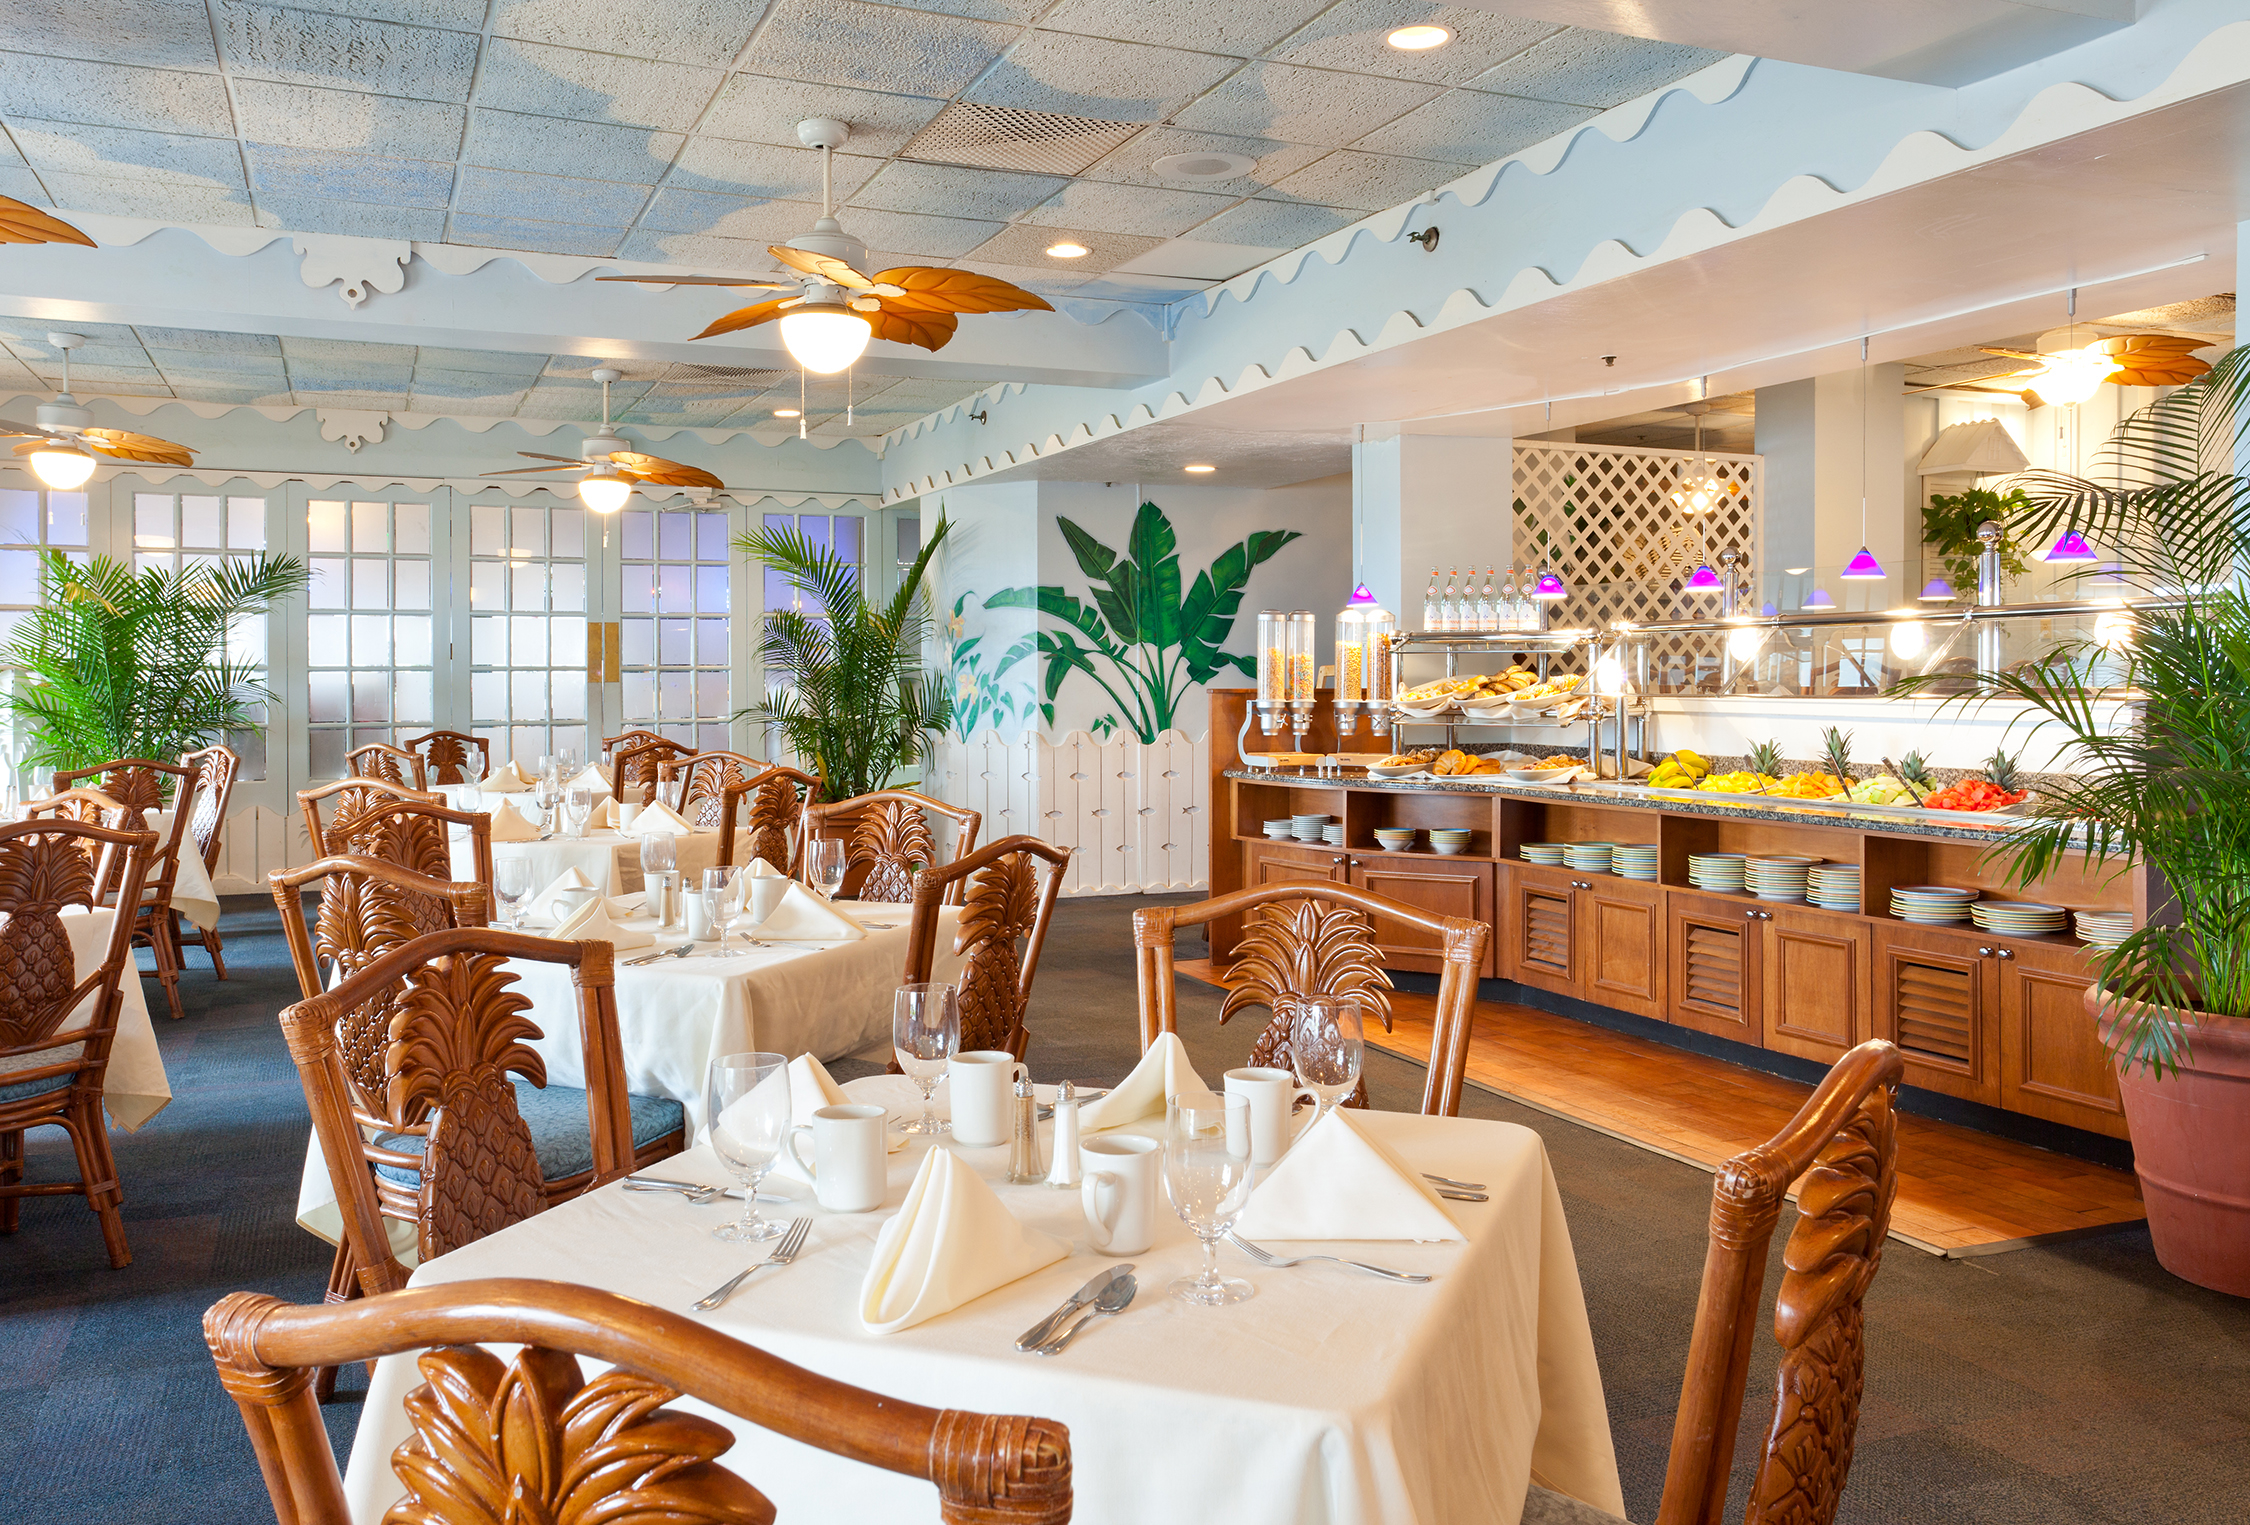 Breakfast, lunch and dinner are served at Bermudas Steak & Seafood located on site.